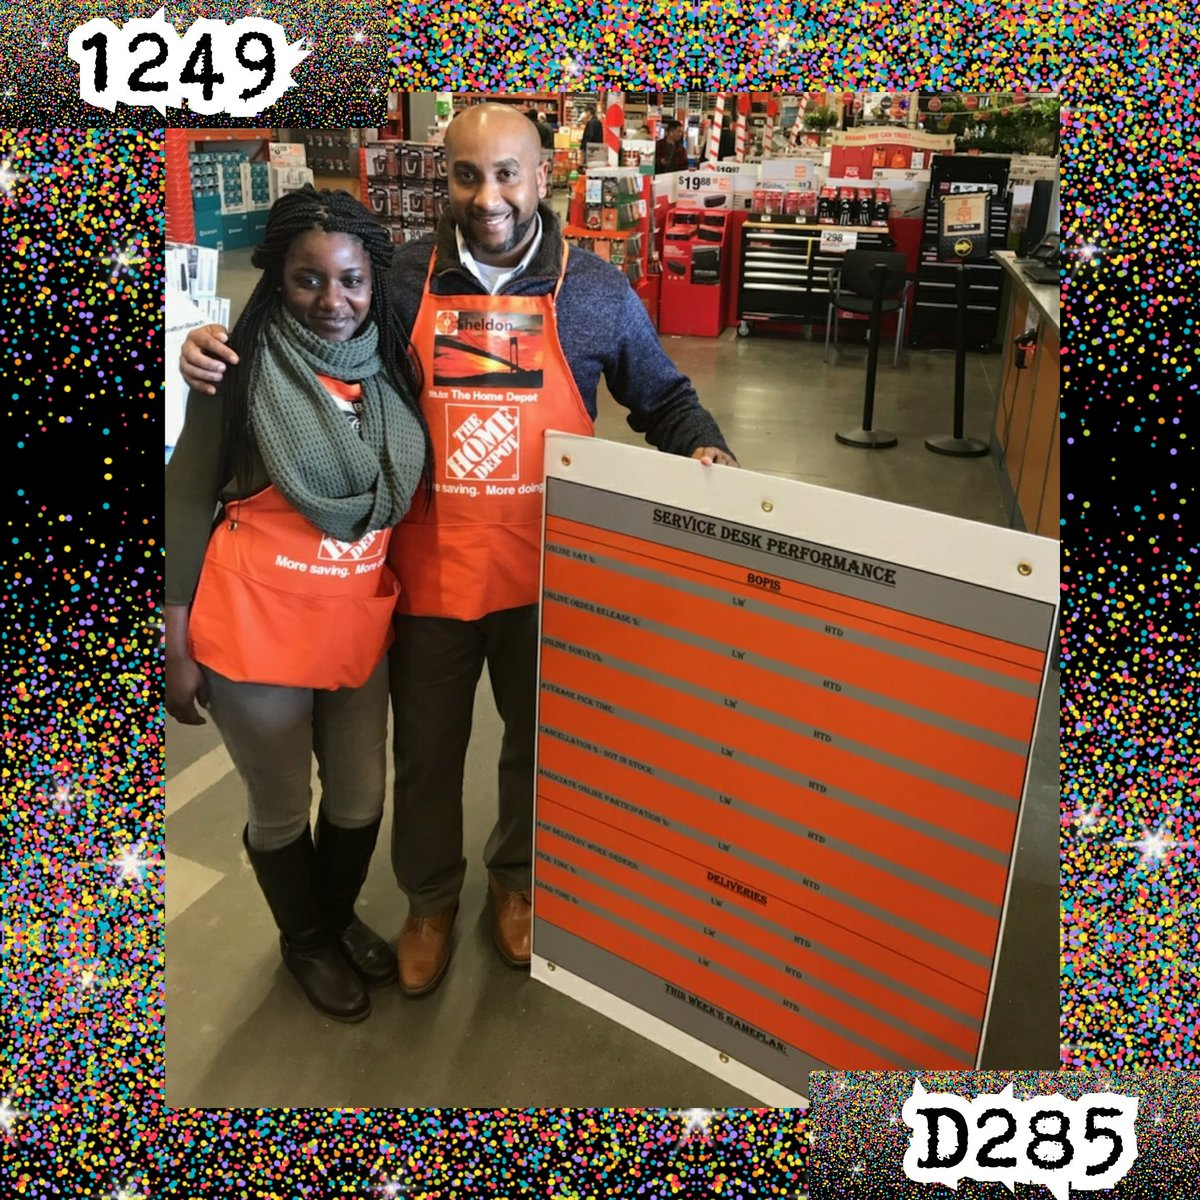 Always Striving To Improve The Online Experience At Home Depot Store 1249 Receiving Their Service Desk Performance Board BelloMobellopictwitter